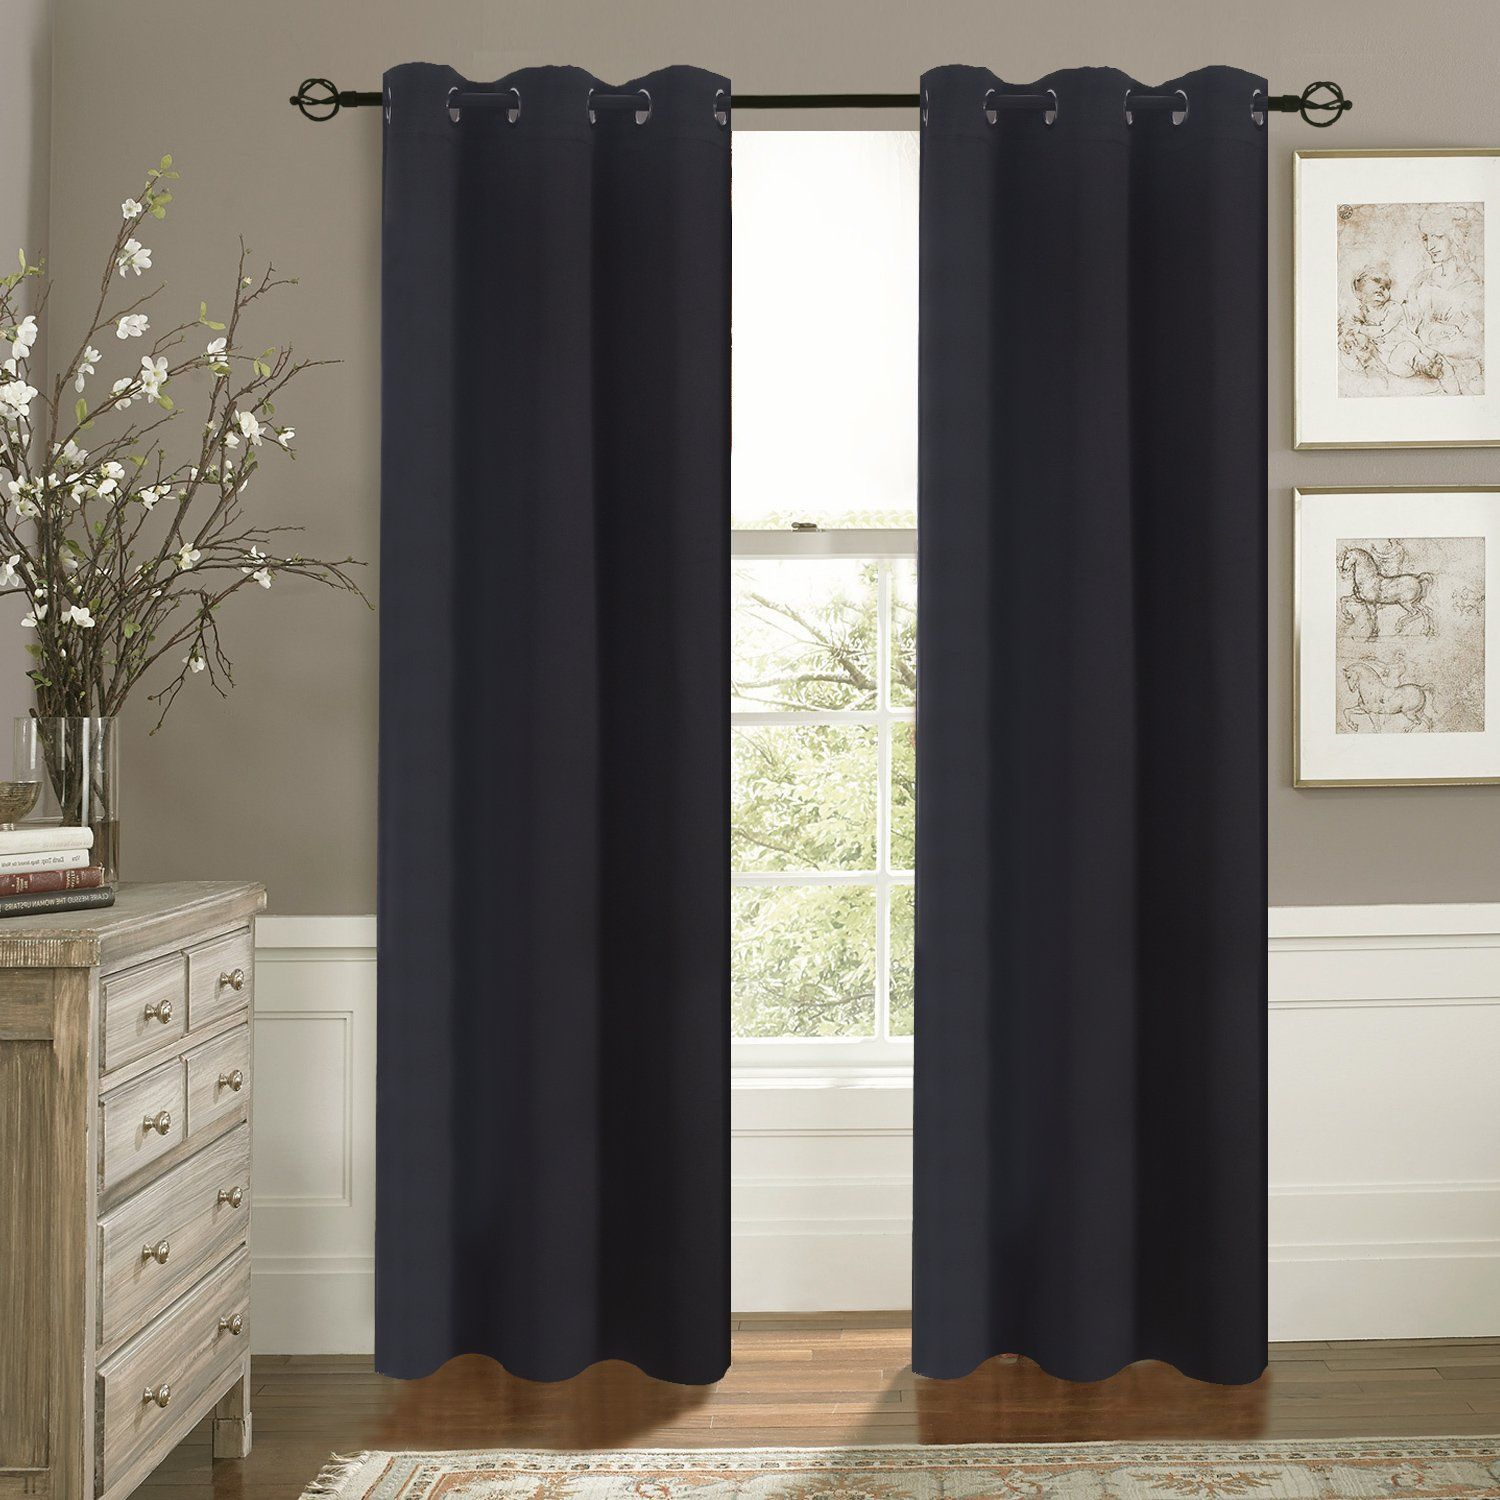 Buy Black Window Curtains Now Recipes With More Insulated Curtains Window Coverings Blackout Curtains